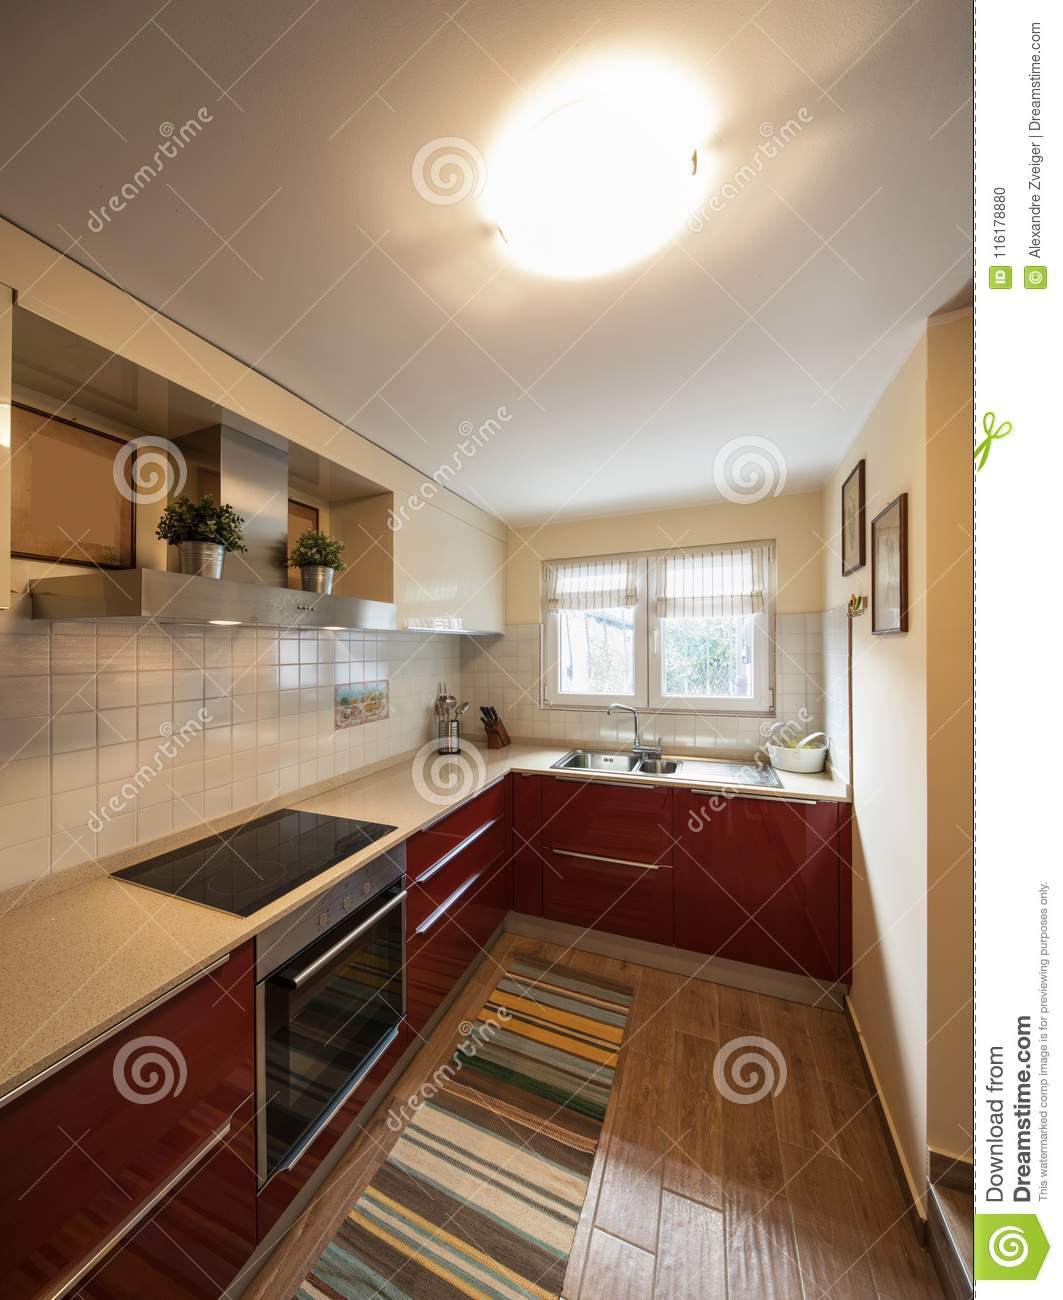 Red modern kitchen with new appliances